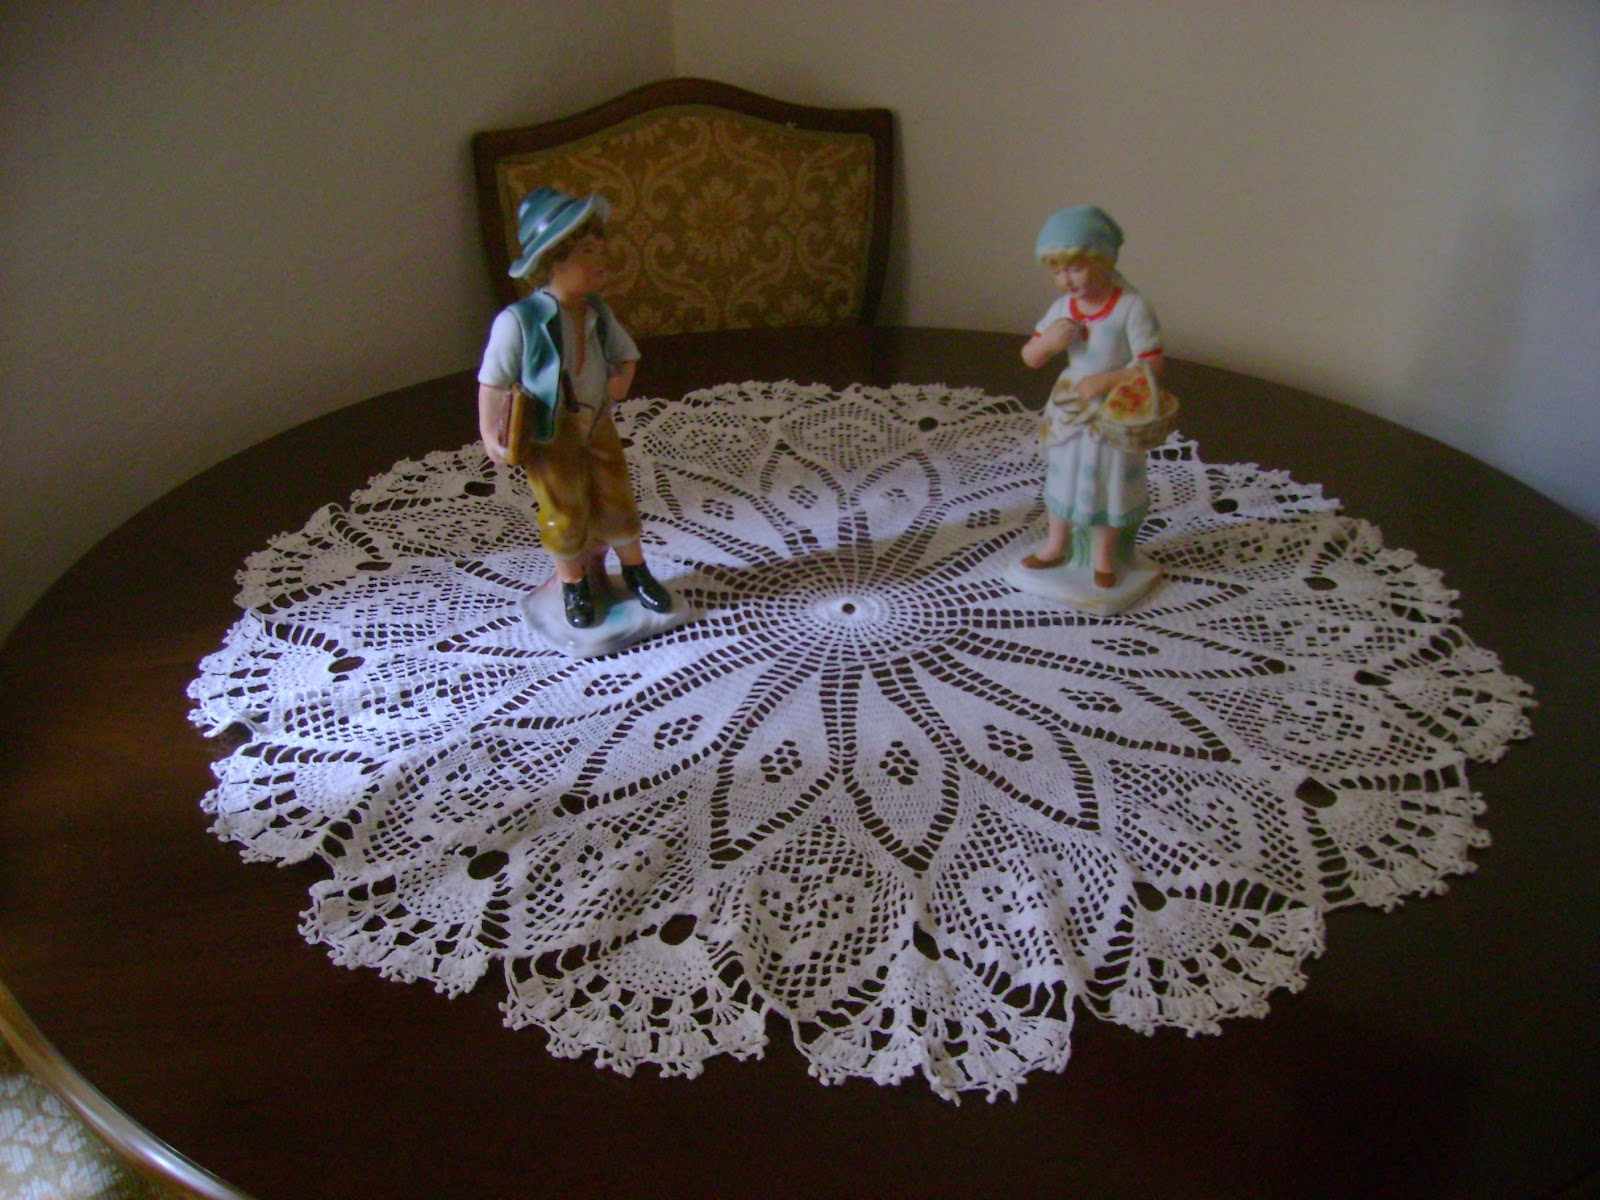 Free Crochet Oblong Tablecloth Patterns : Crochet On Sale: Crochet Tablecloths